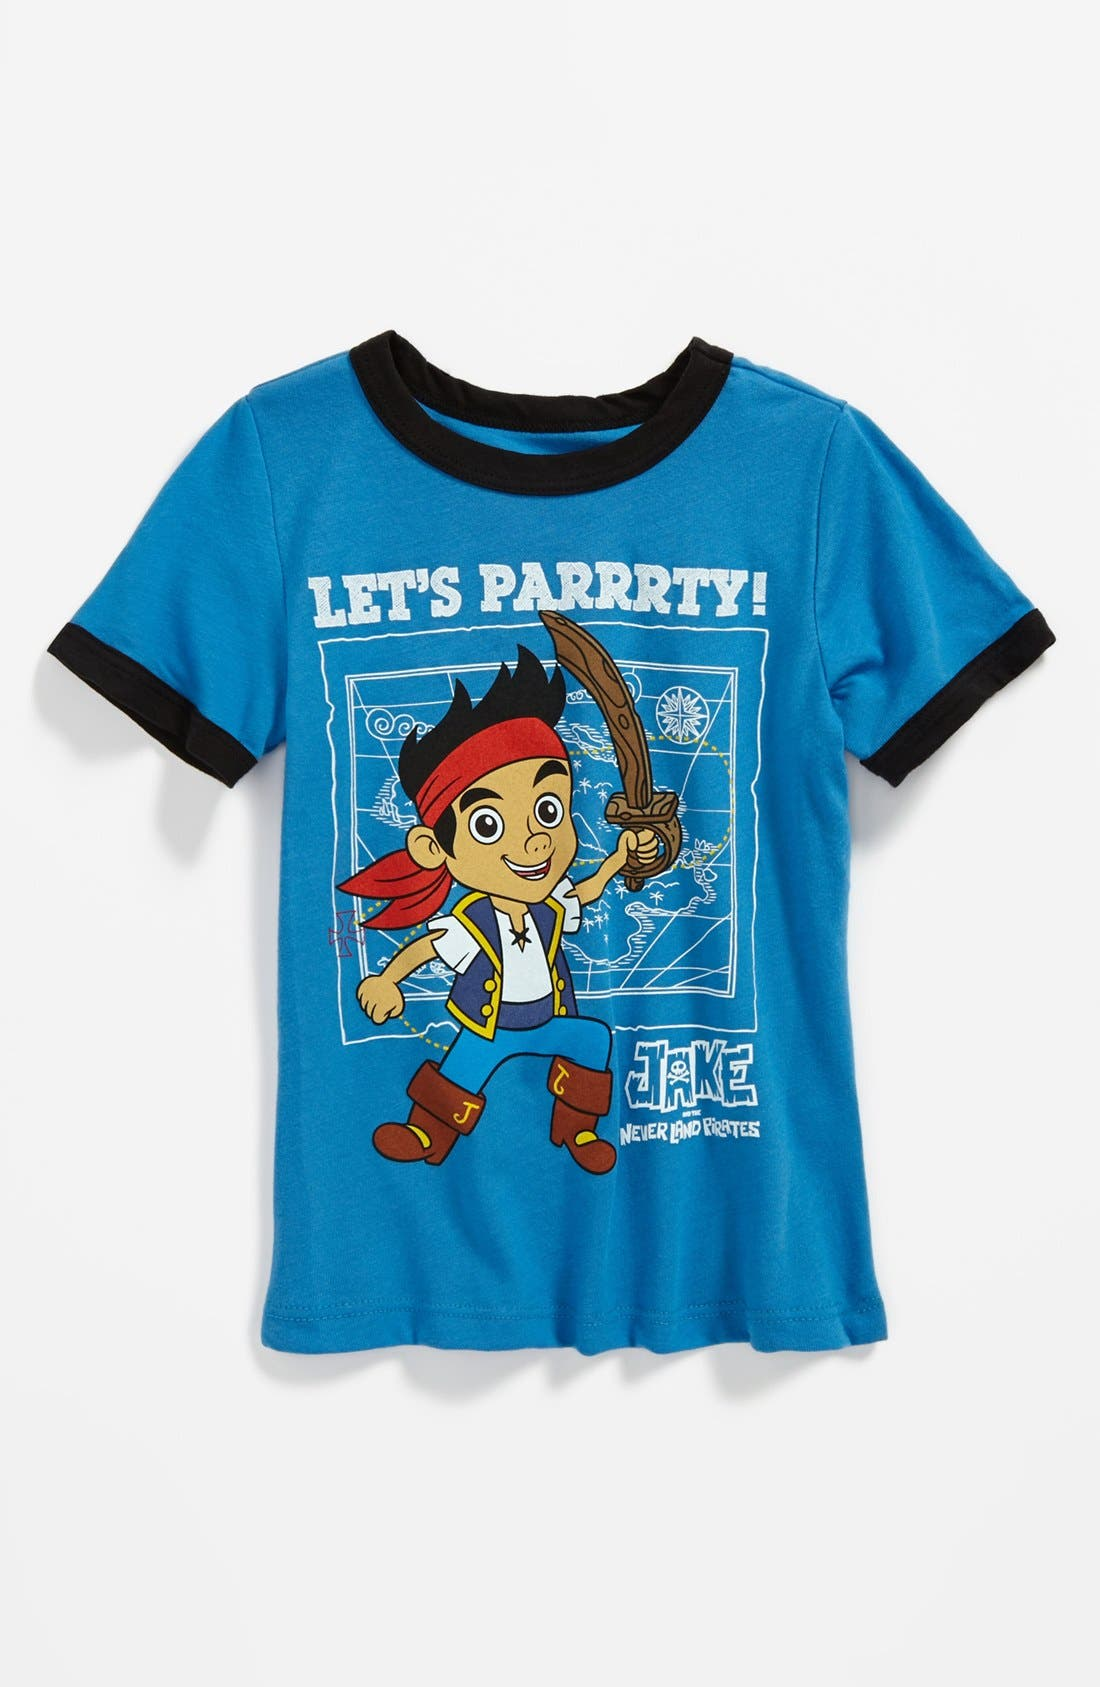 Alternate Image 1 Selected - Mighty Fine 'Let's Parrrty' T-Shirt (Toddler Boys)